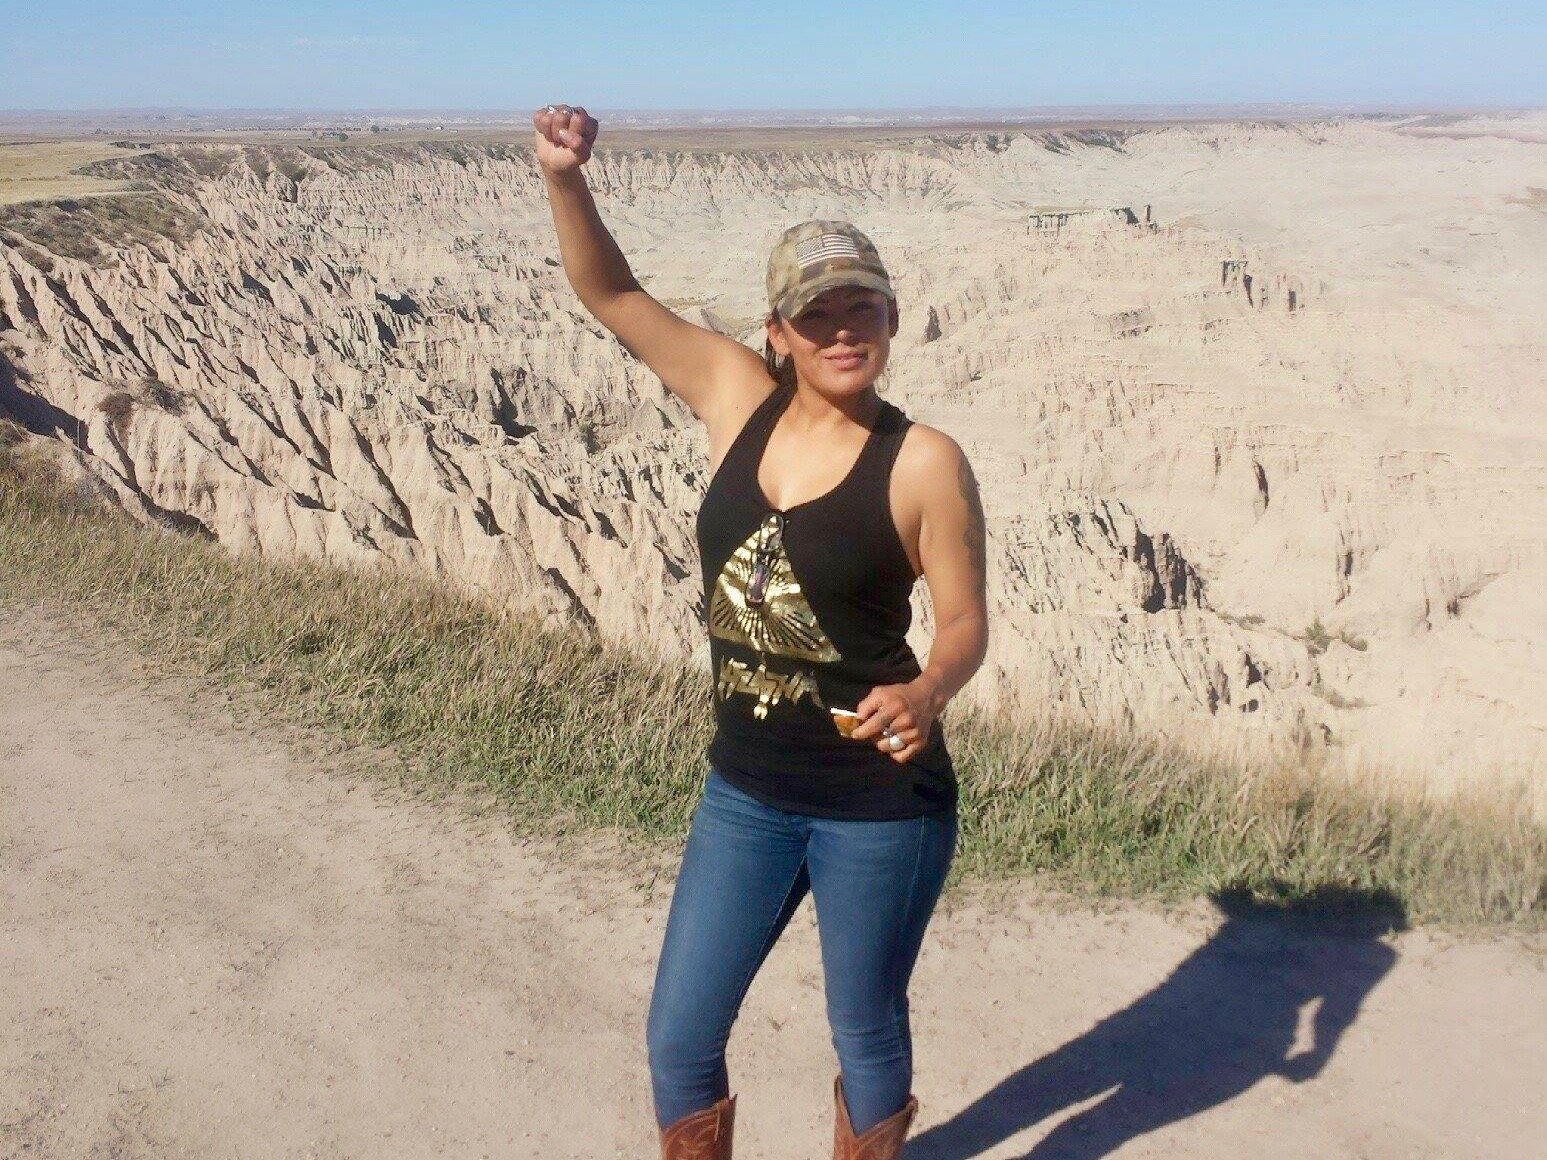 Red Fawn Fallis sentenced to nearly five years for #NoDAPL incident